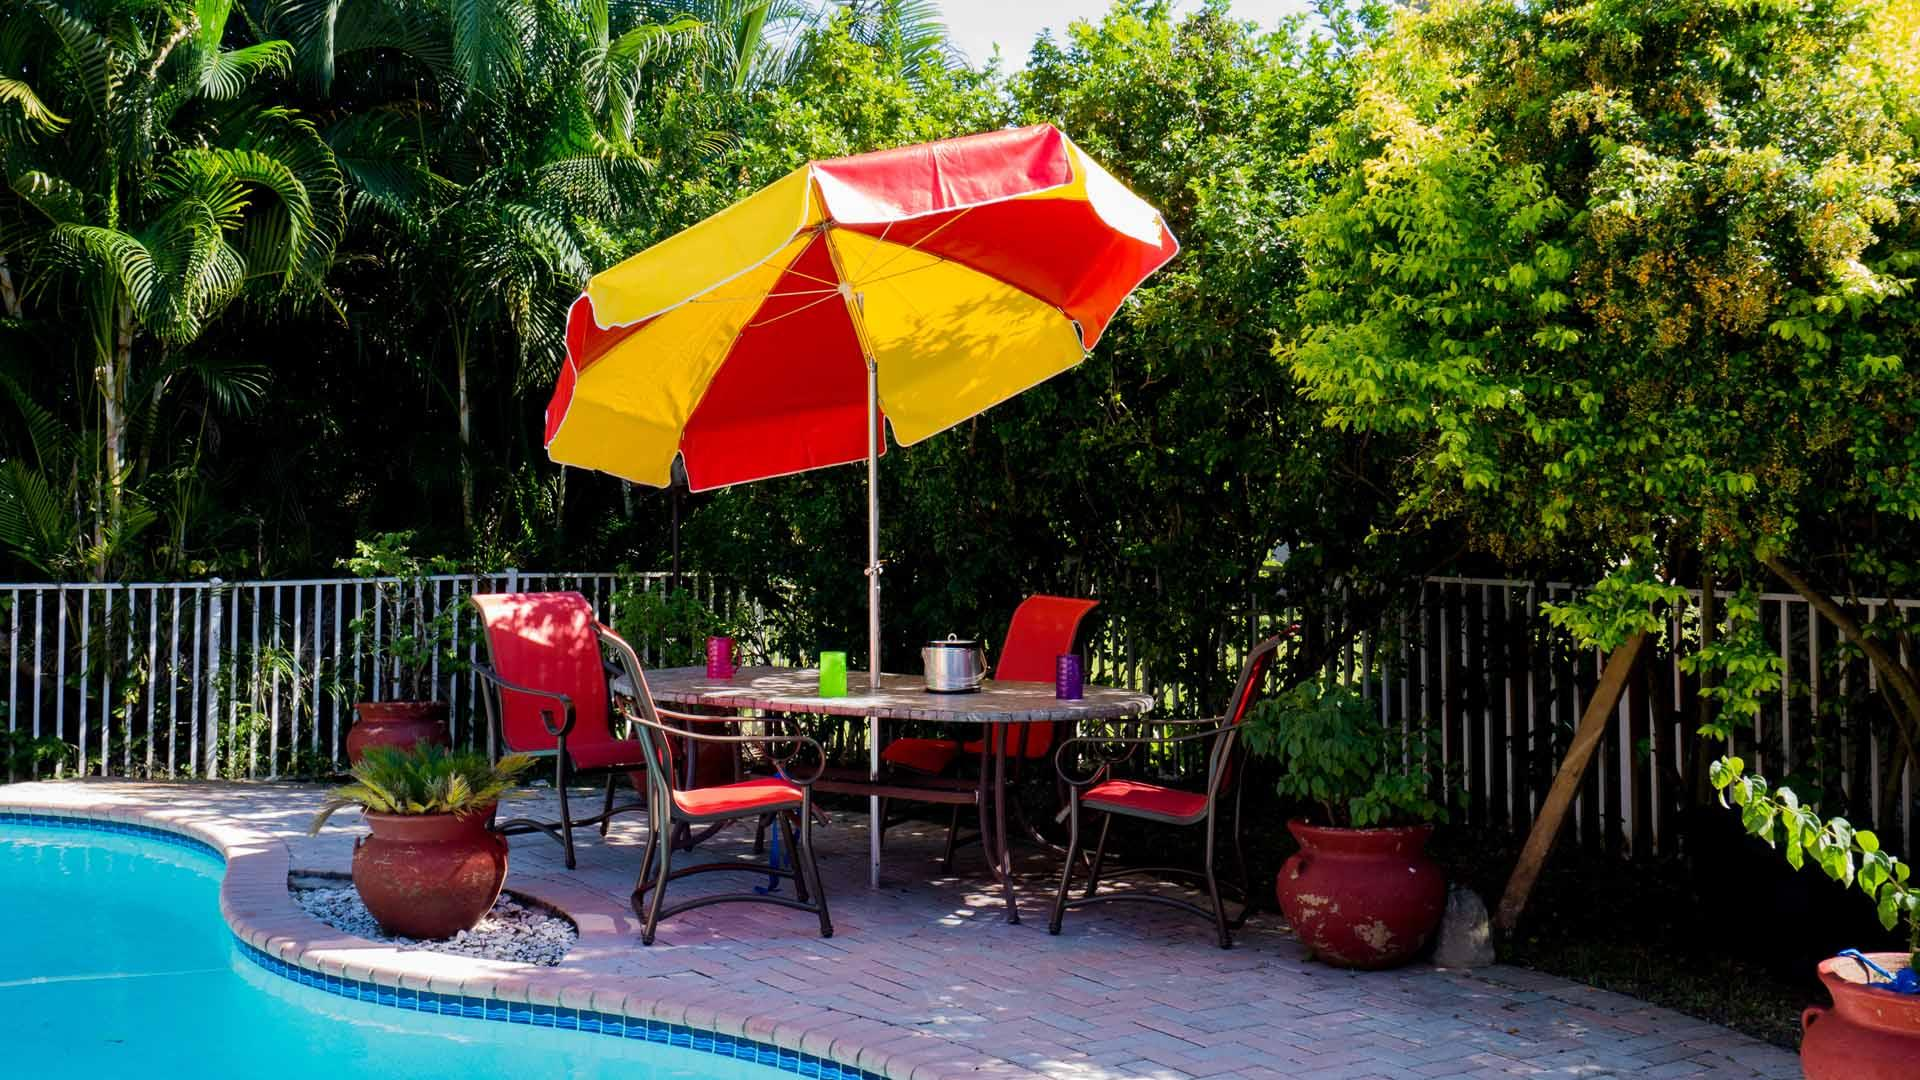 Patio Umbrella 7.50Ft by 8 Ribs, Crank or Pushu Up, Fiberglass or Steel Ribs, Canvas or Vinyl, Aluminum Pole (1 or 2 Piece Pole)